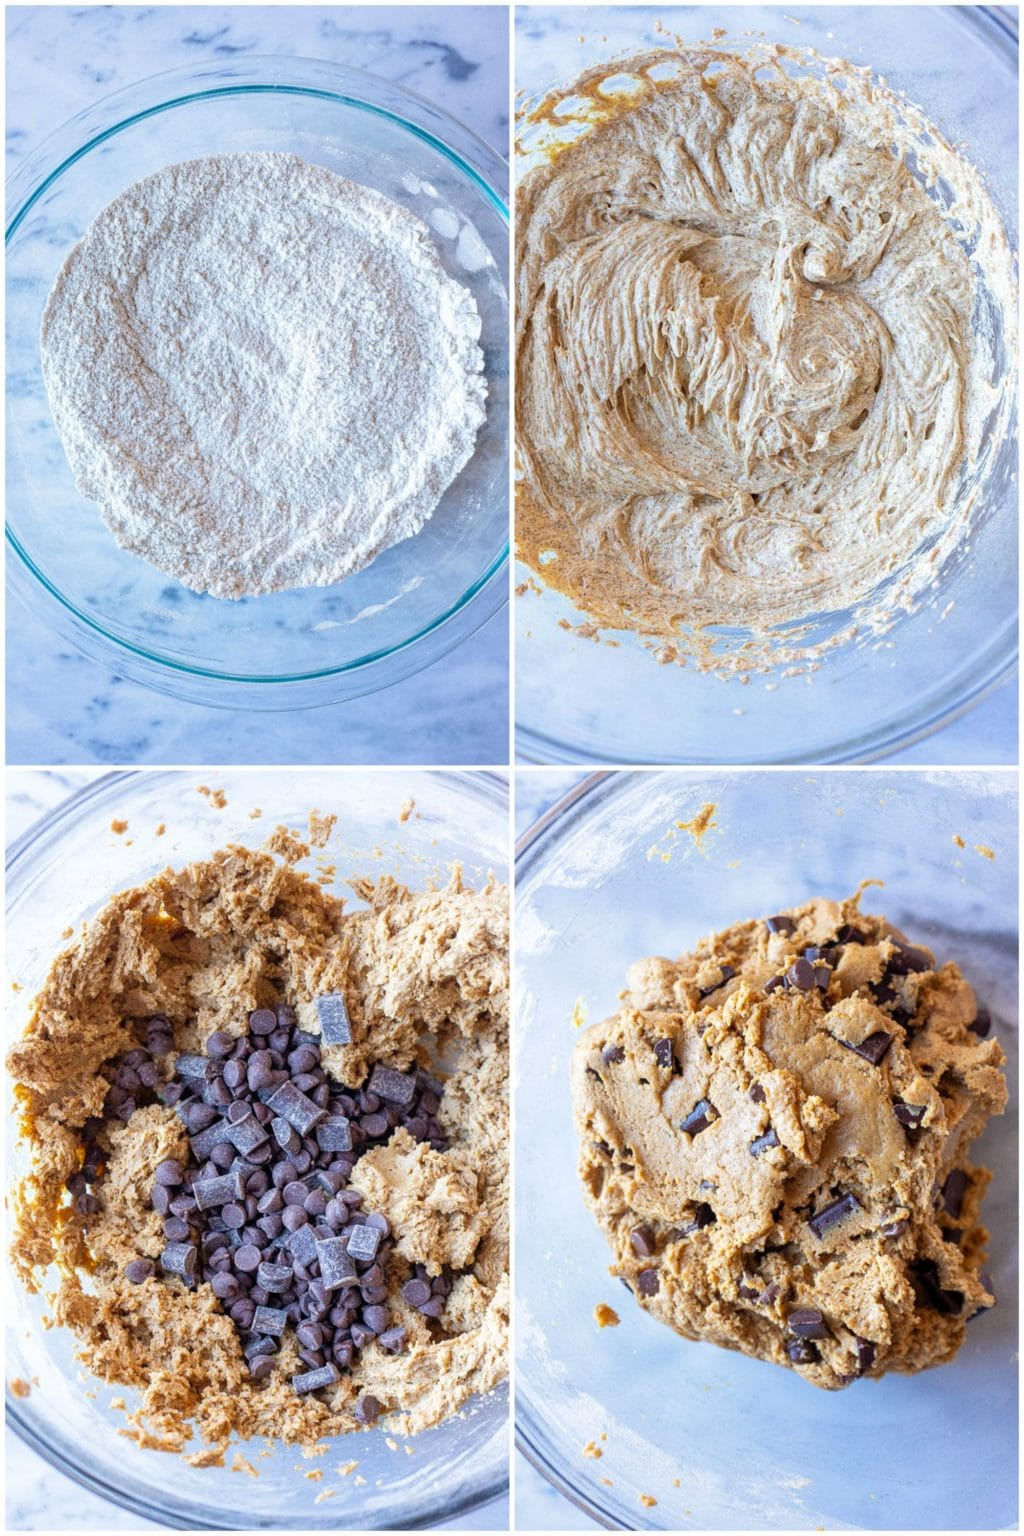 Showing how to make chocolate chip cookies process